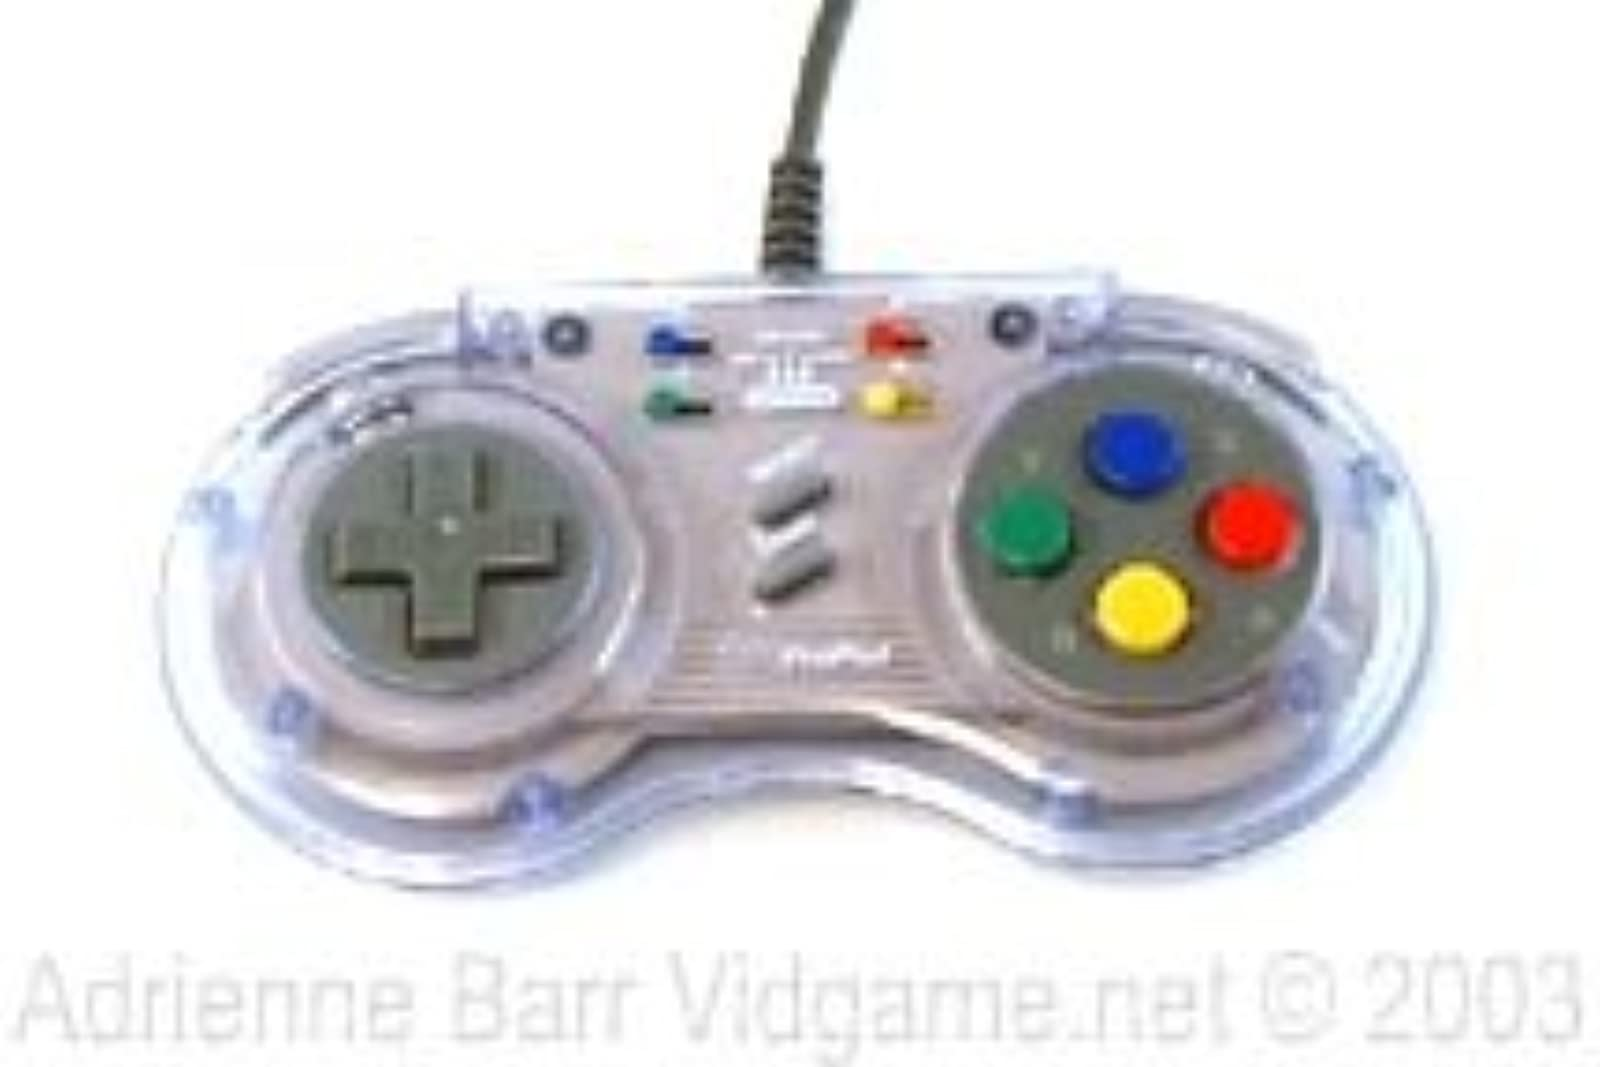 Sn Propad For Super Nintendo SNES Clear Gamepad WHA461